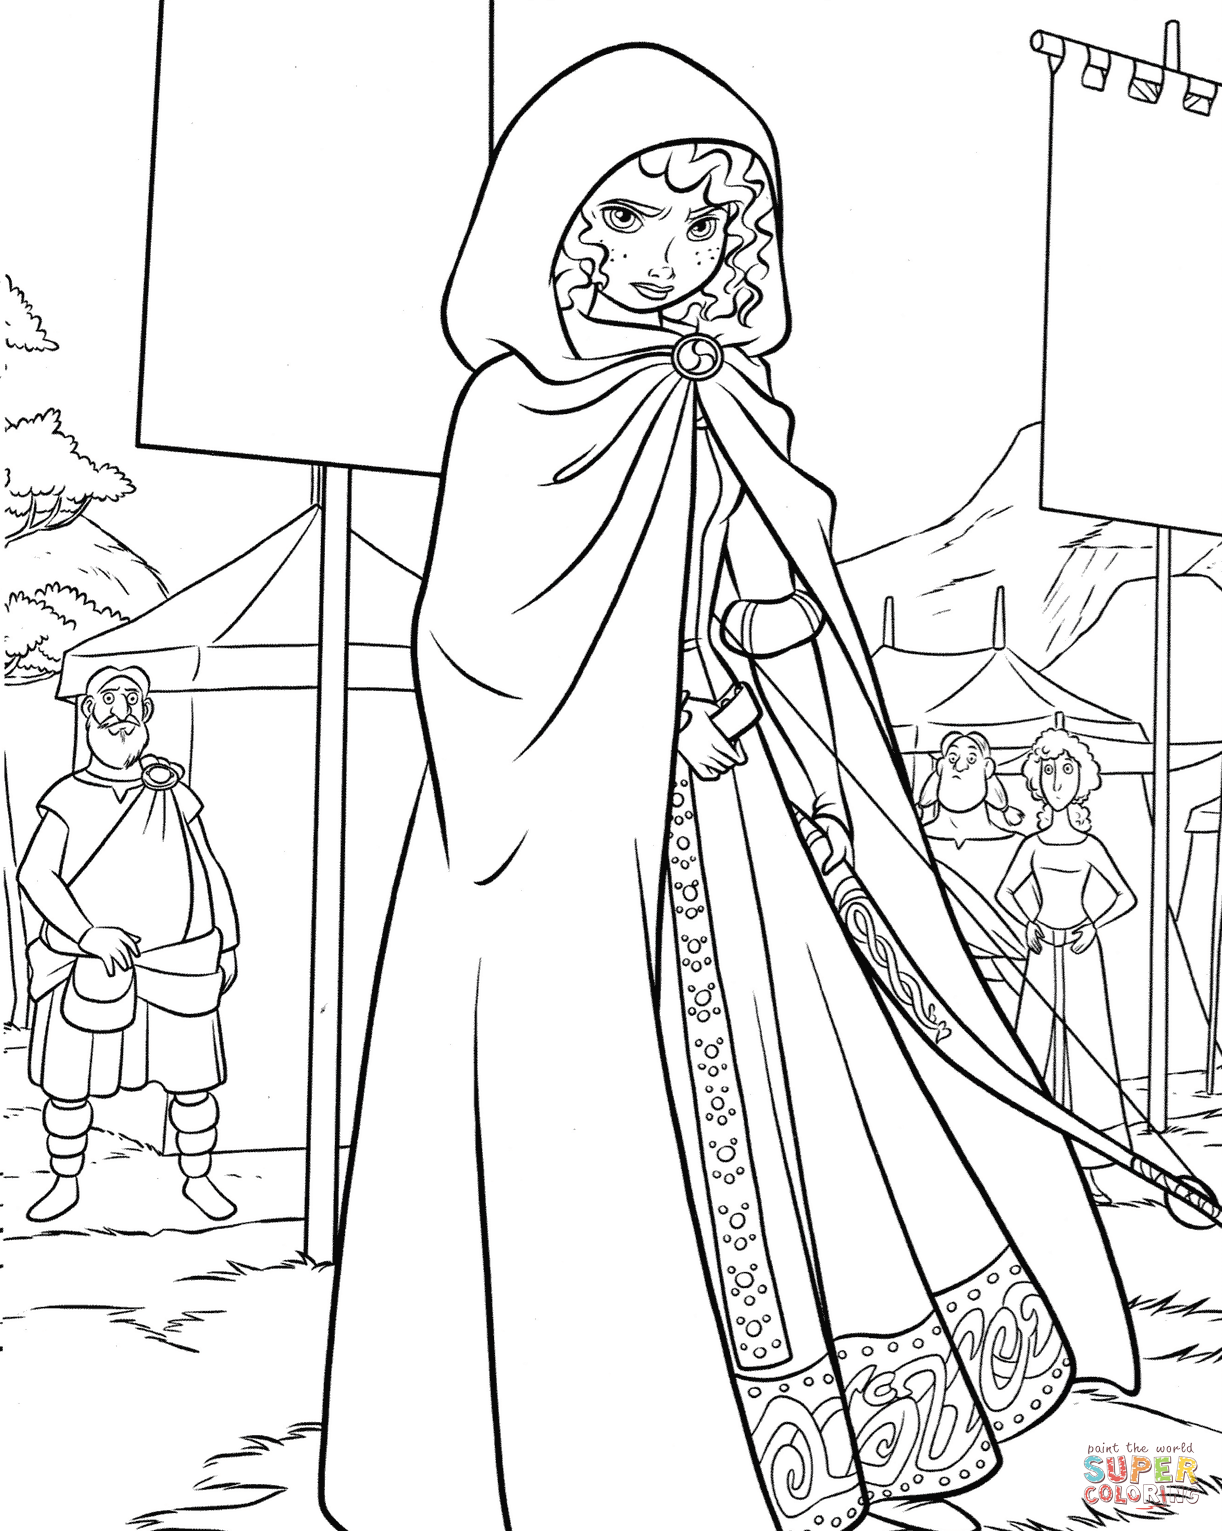 Merida On A Highland Games Coloring Pages 1222×1531